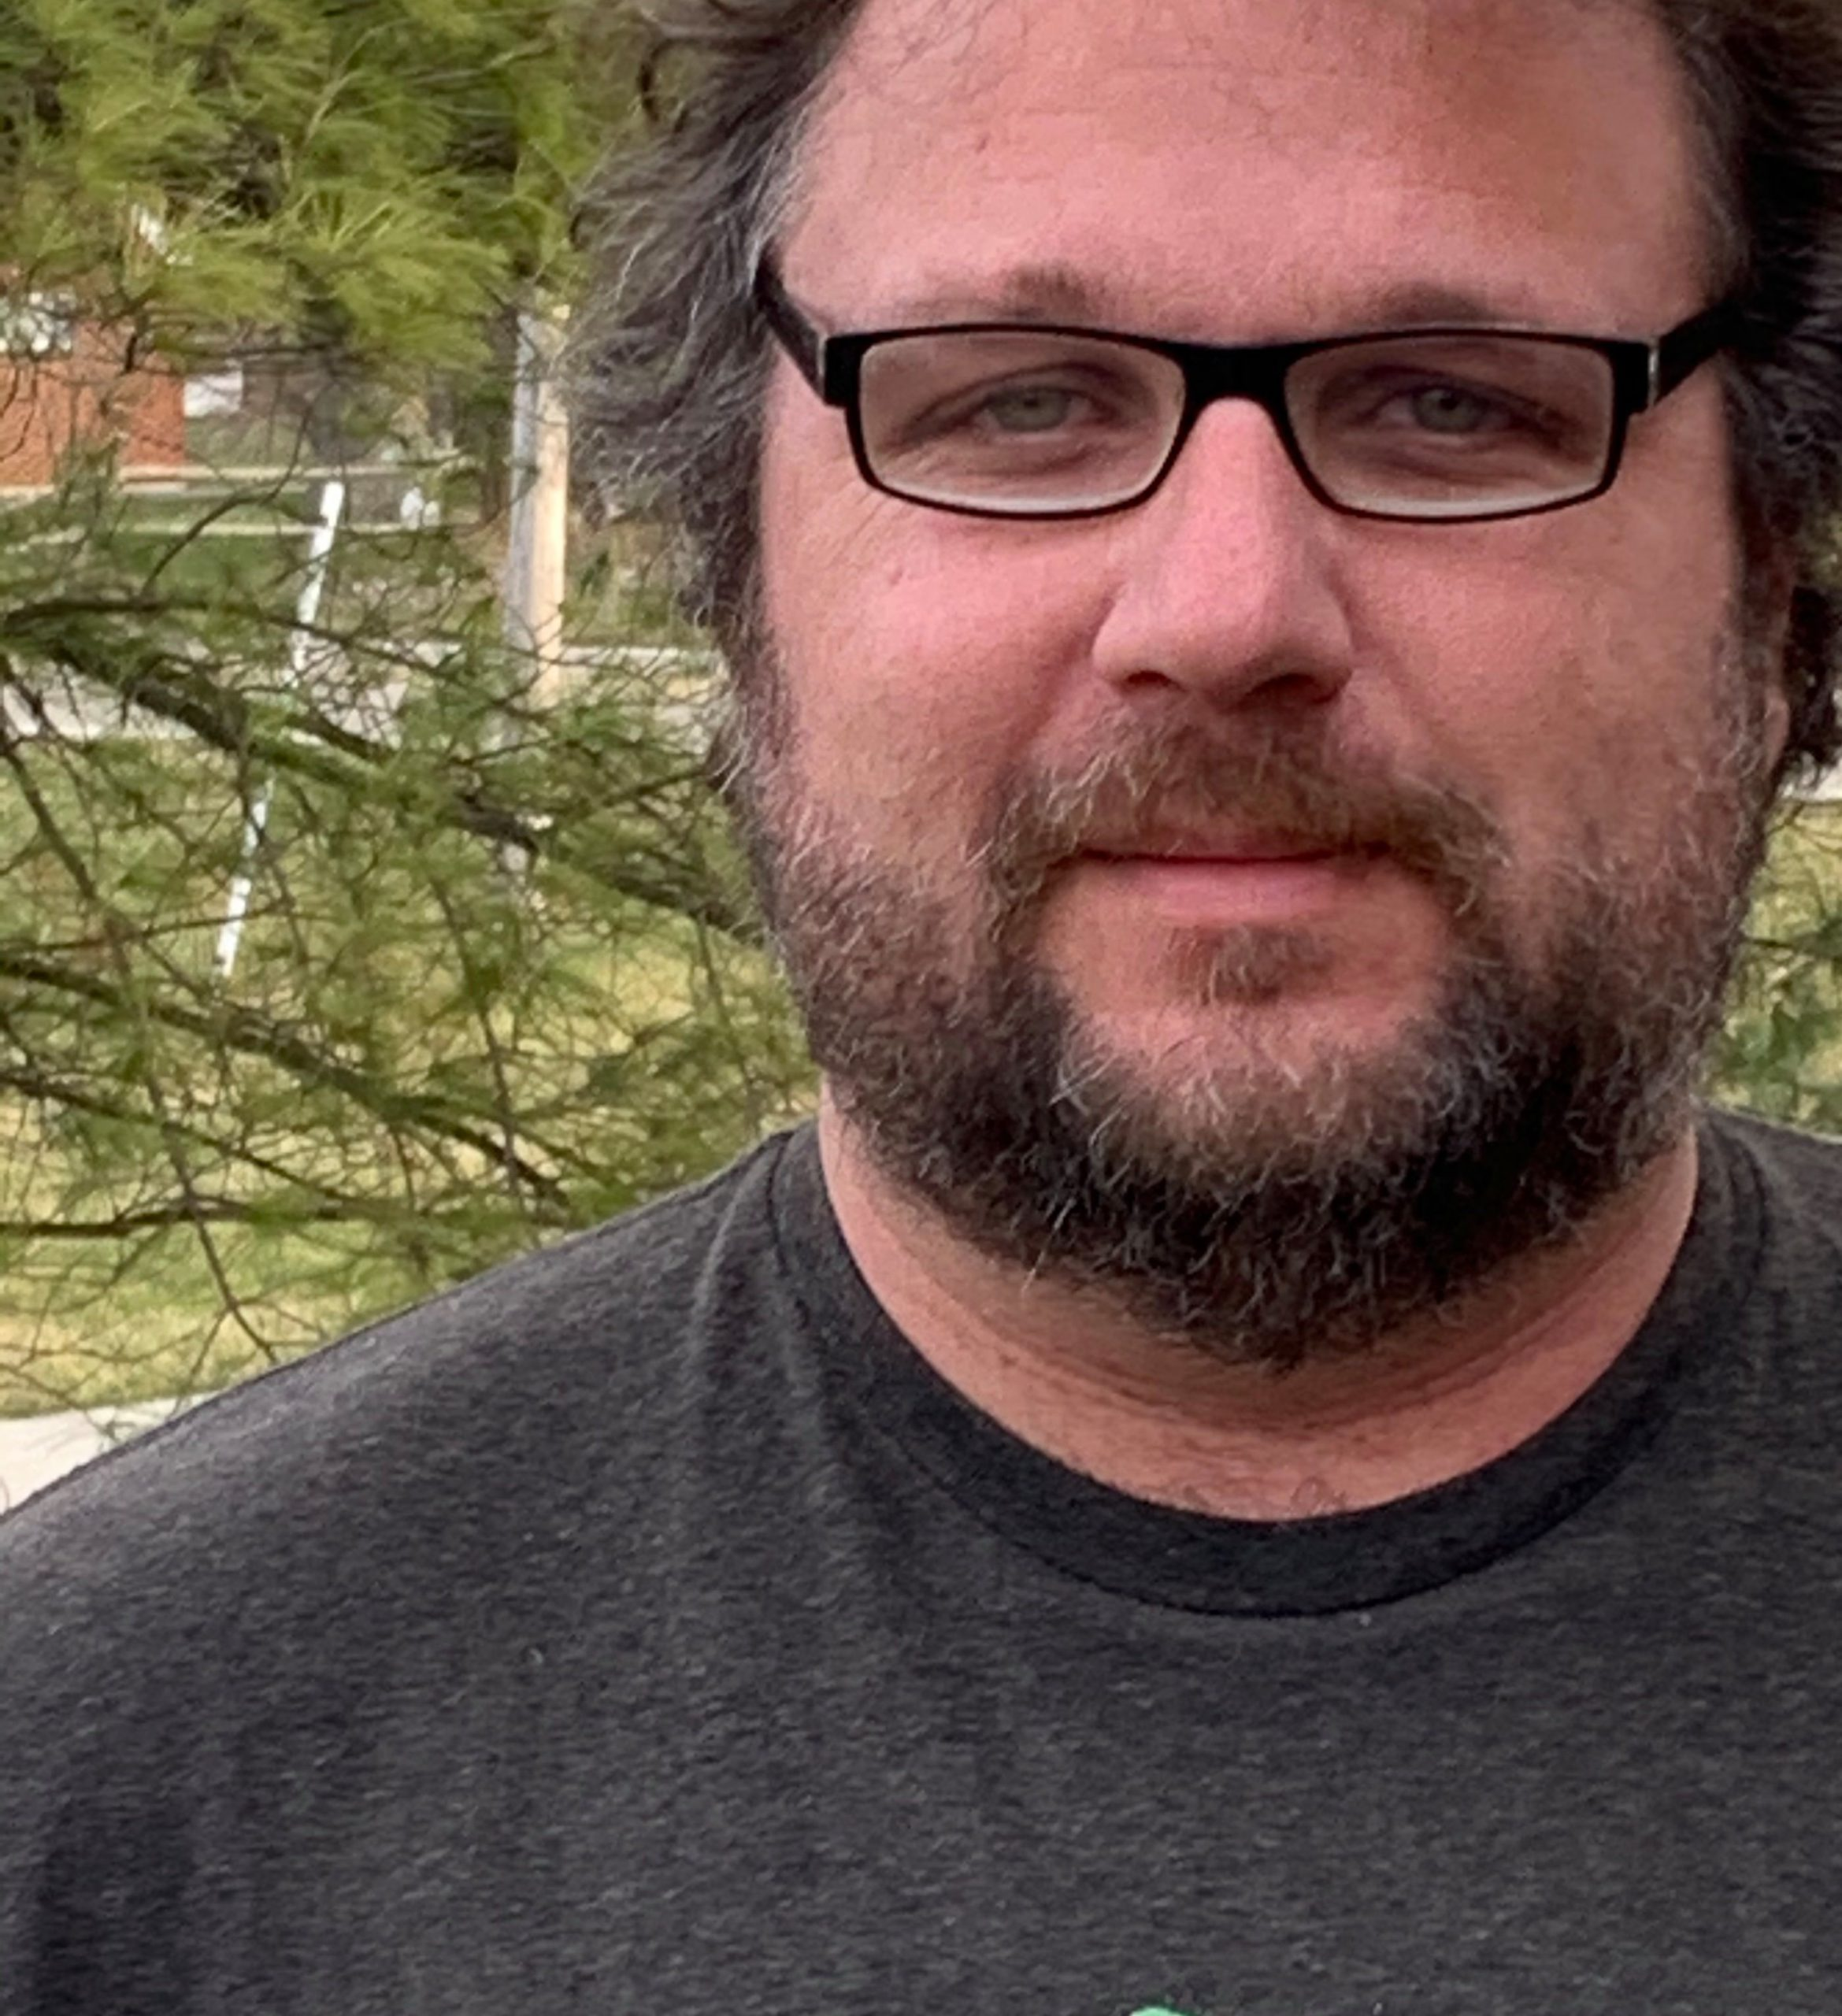 Mark Haap is a guitar instructor at Tallant Music Studio in Fort Thomas, Kentucky